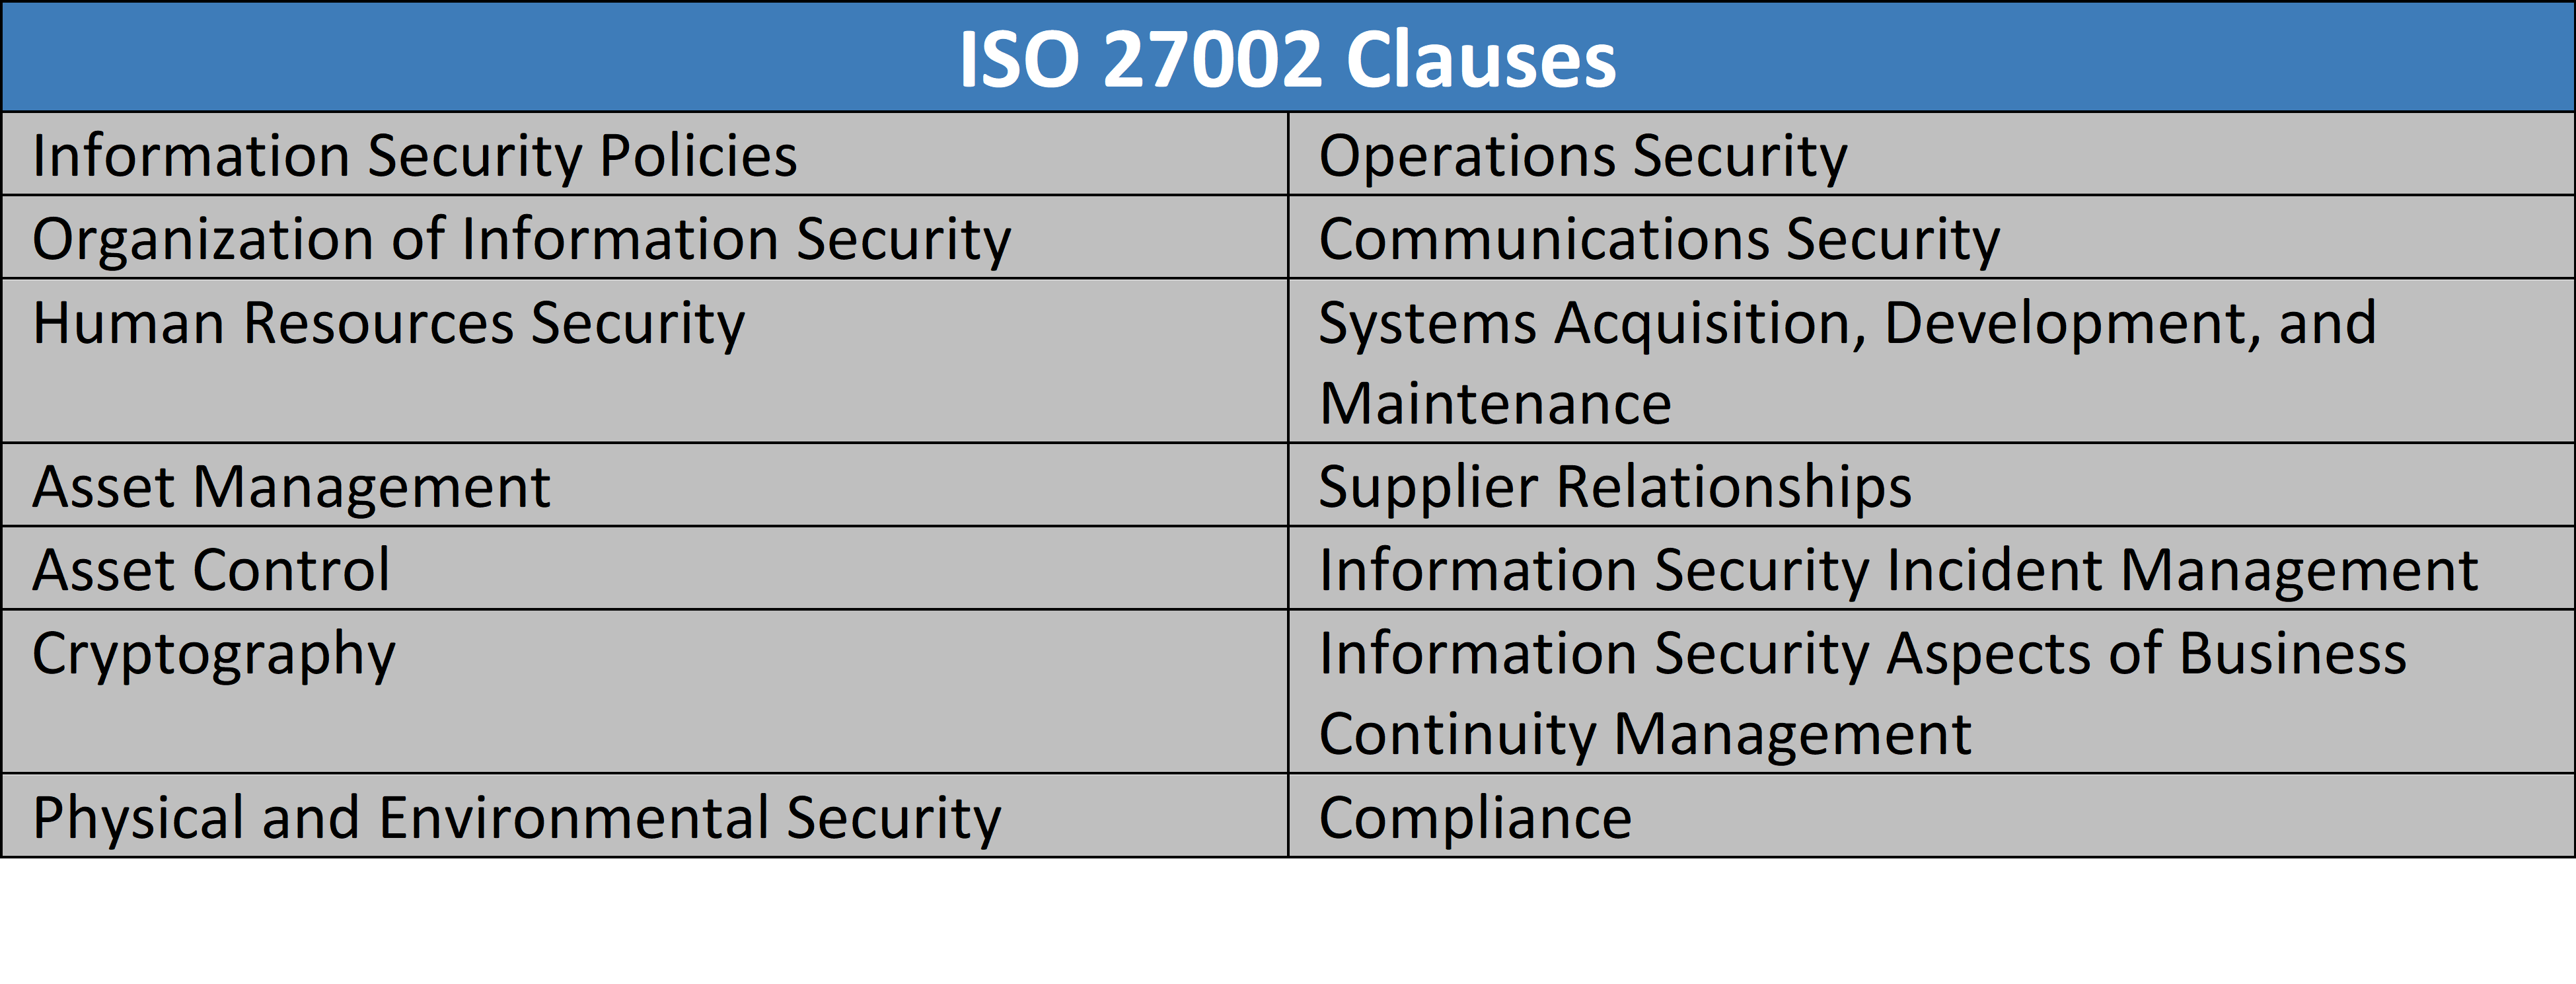 ISO 27002 Risk Assessment Clauses